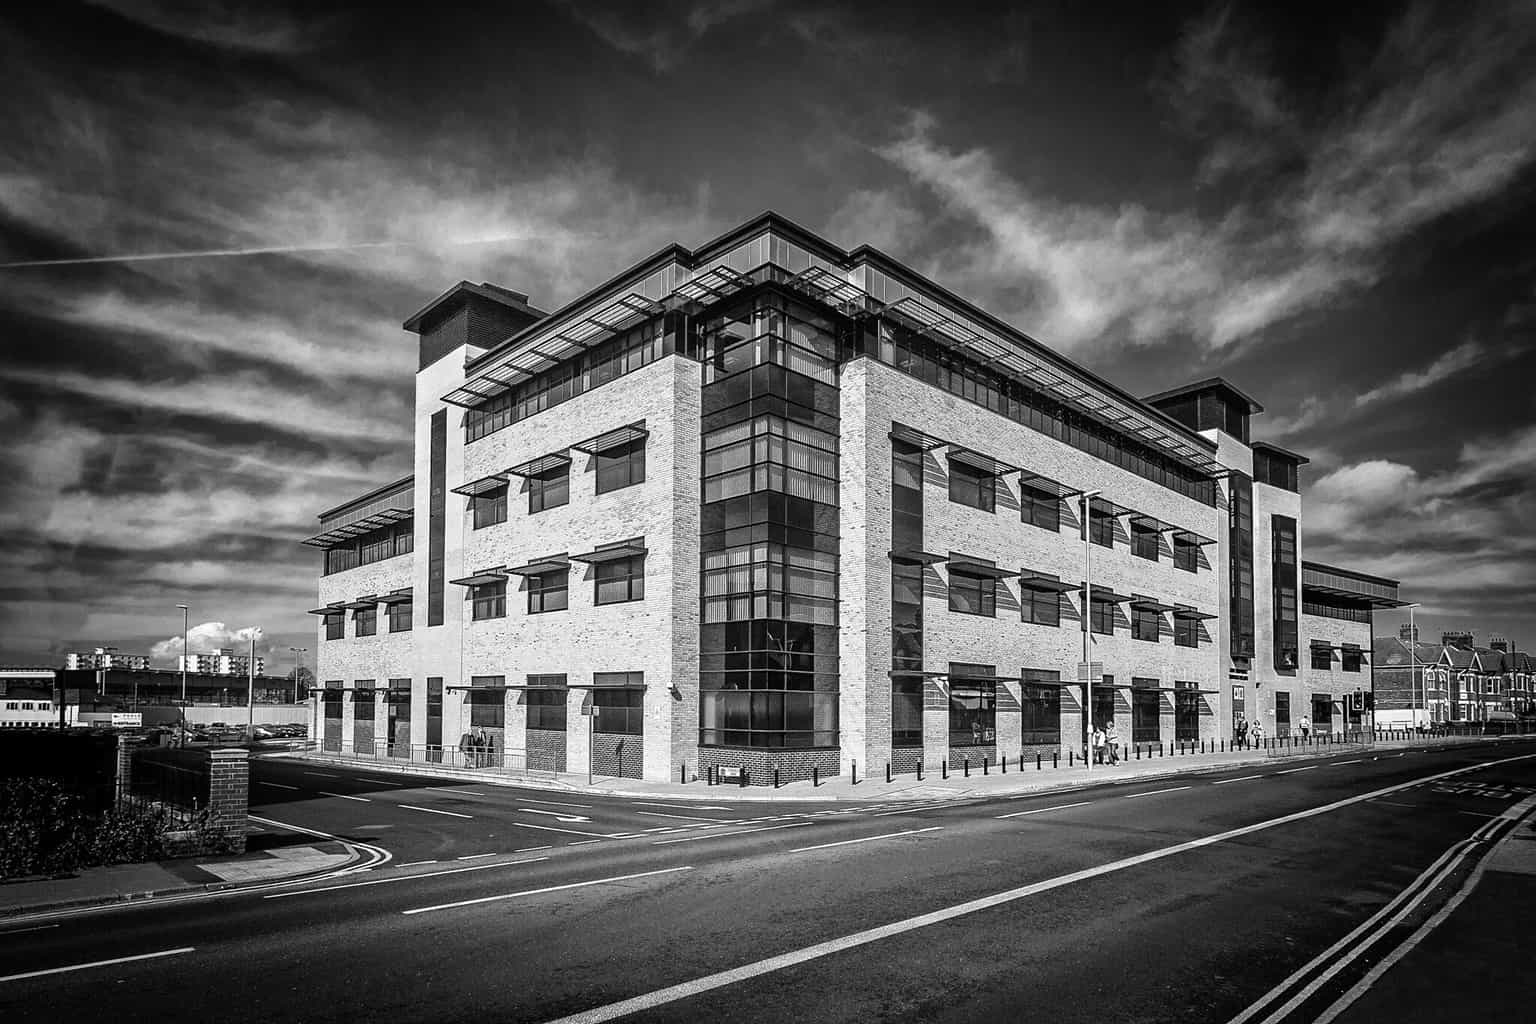 Joint Emergency Services Building, Poole, Dorset